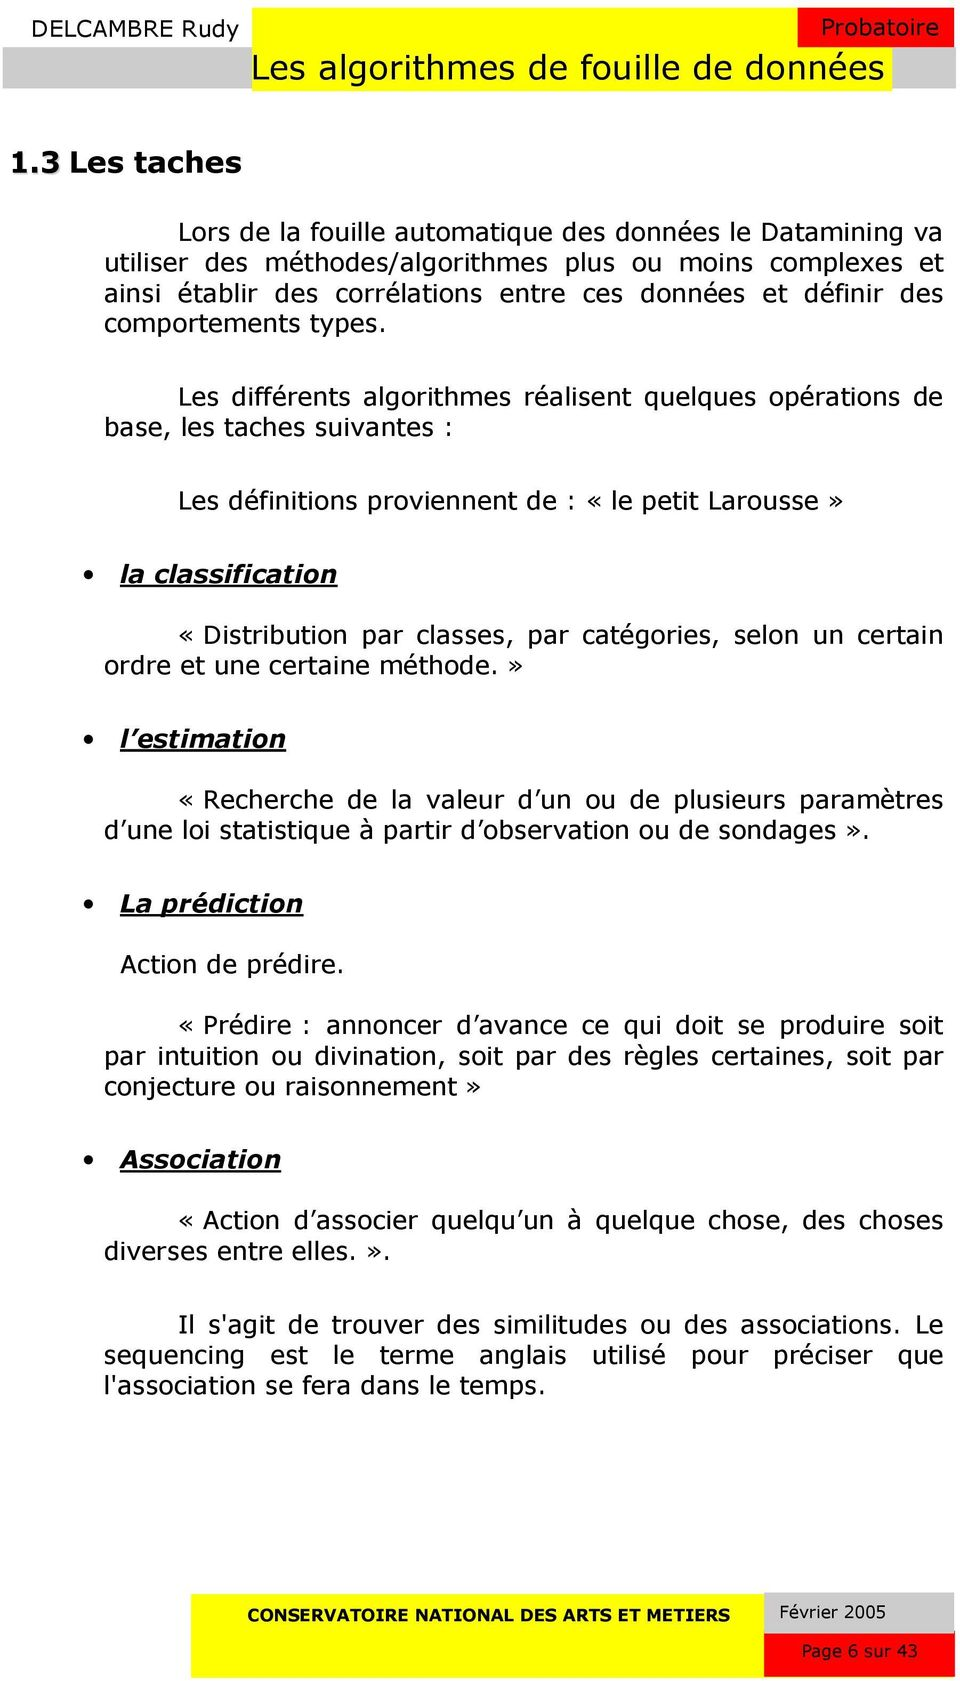 Les différents algorithmes réalisent quelques opérations de base, les taches suivantes : Les définitions proviennent de : «le petit Larousse» la classification «Distribution par classes, par